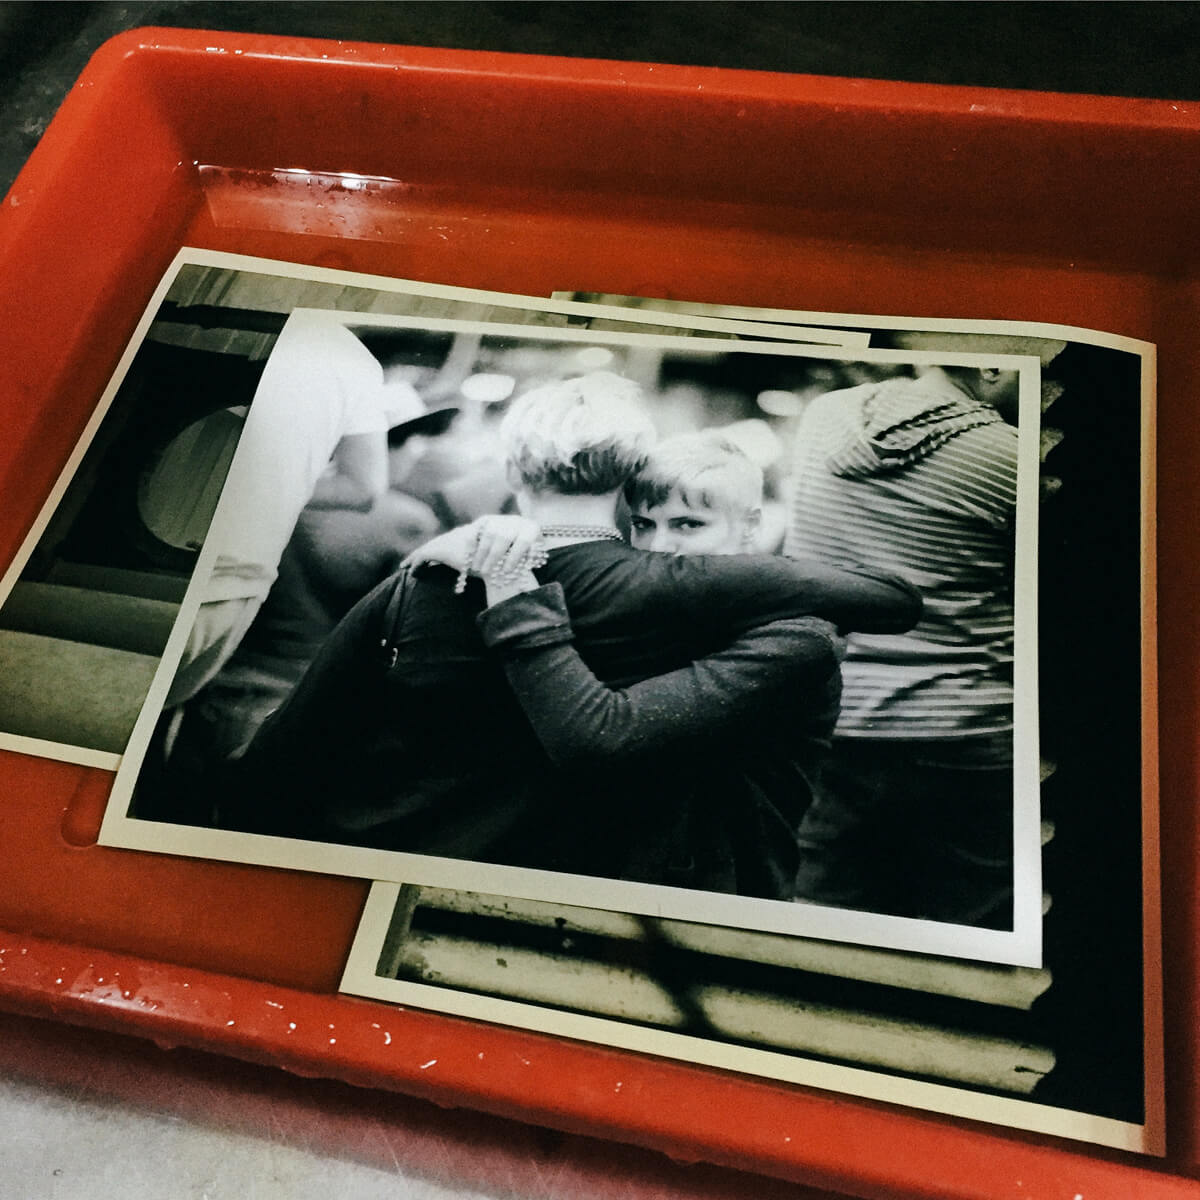 darkroom-print-printing-of-my-work-on-photo-paper-black-and-white-bw-film-process-develop